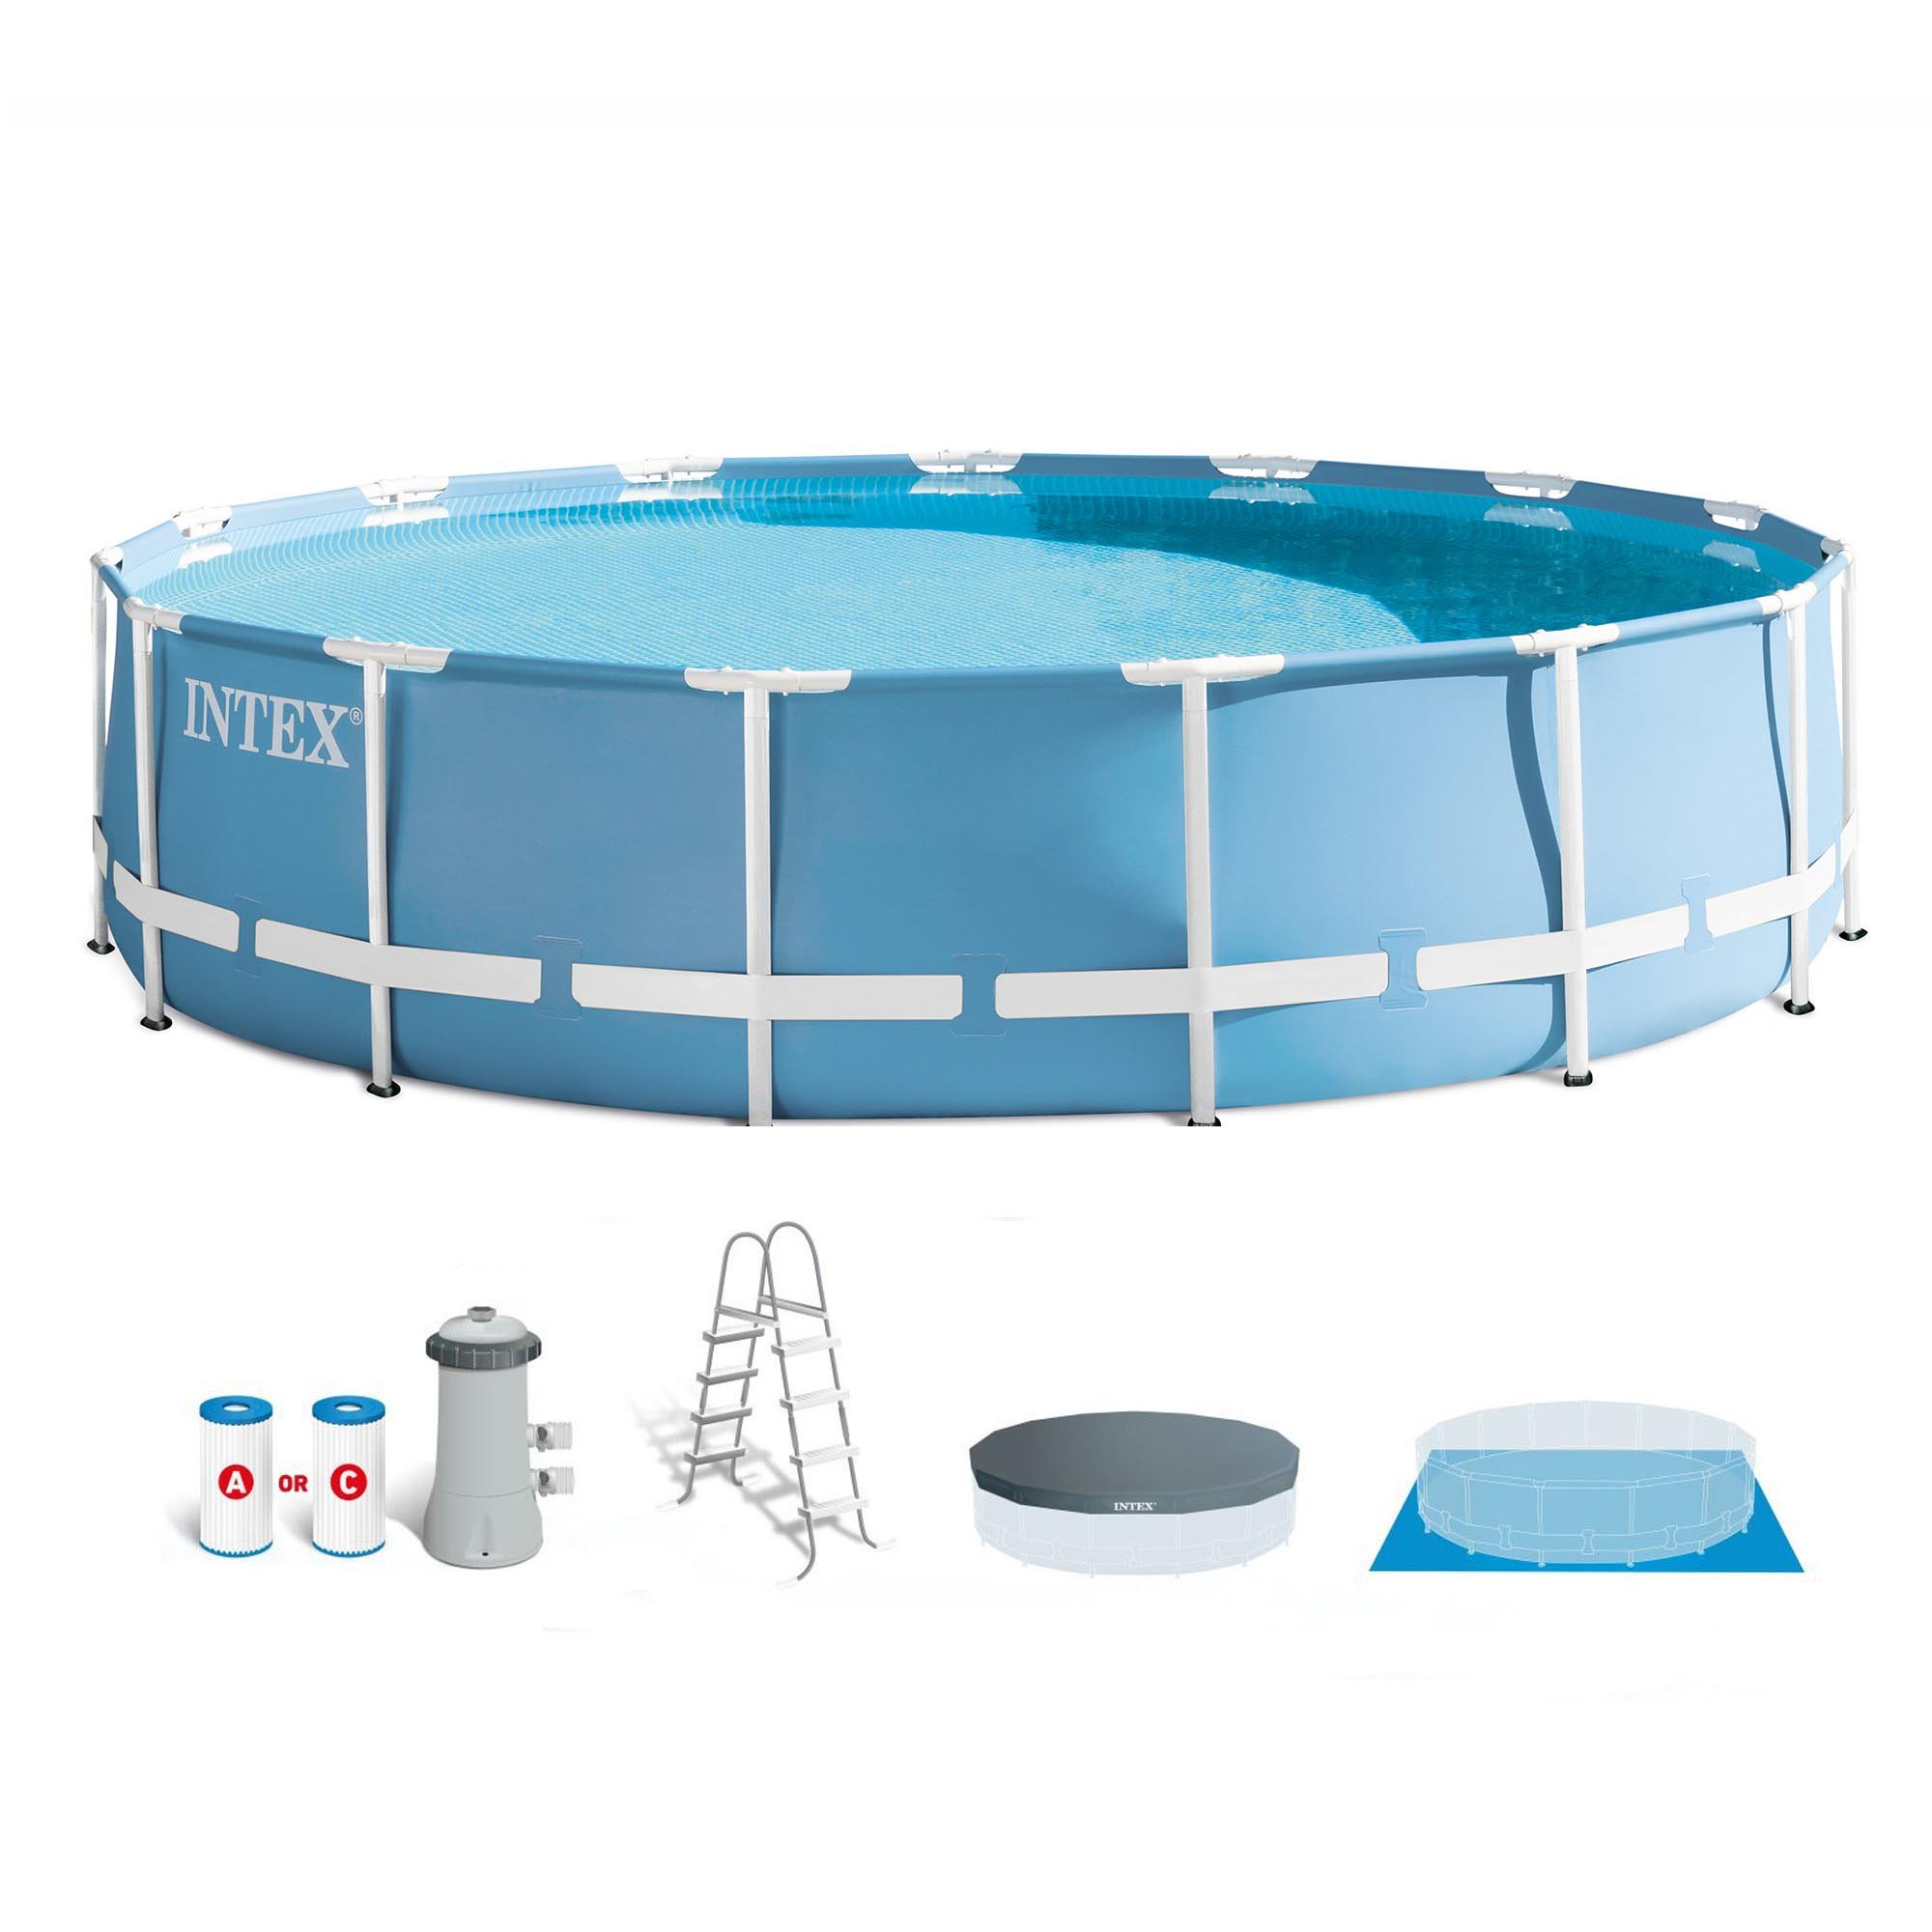 Intex 15 ft. x 48 in. Prism Frame Swimming Pool with 1,000 GPH Filter Pump by Intex